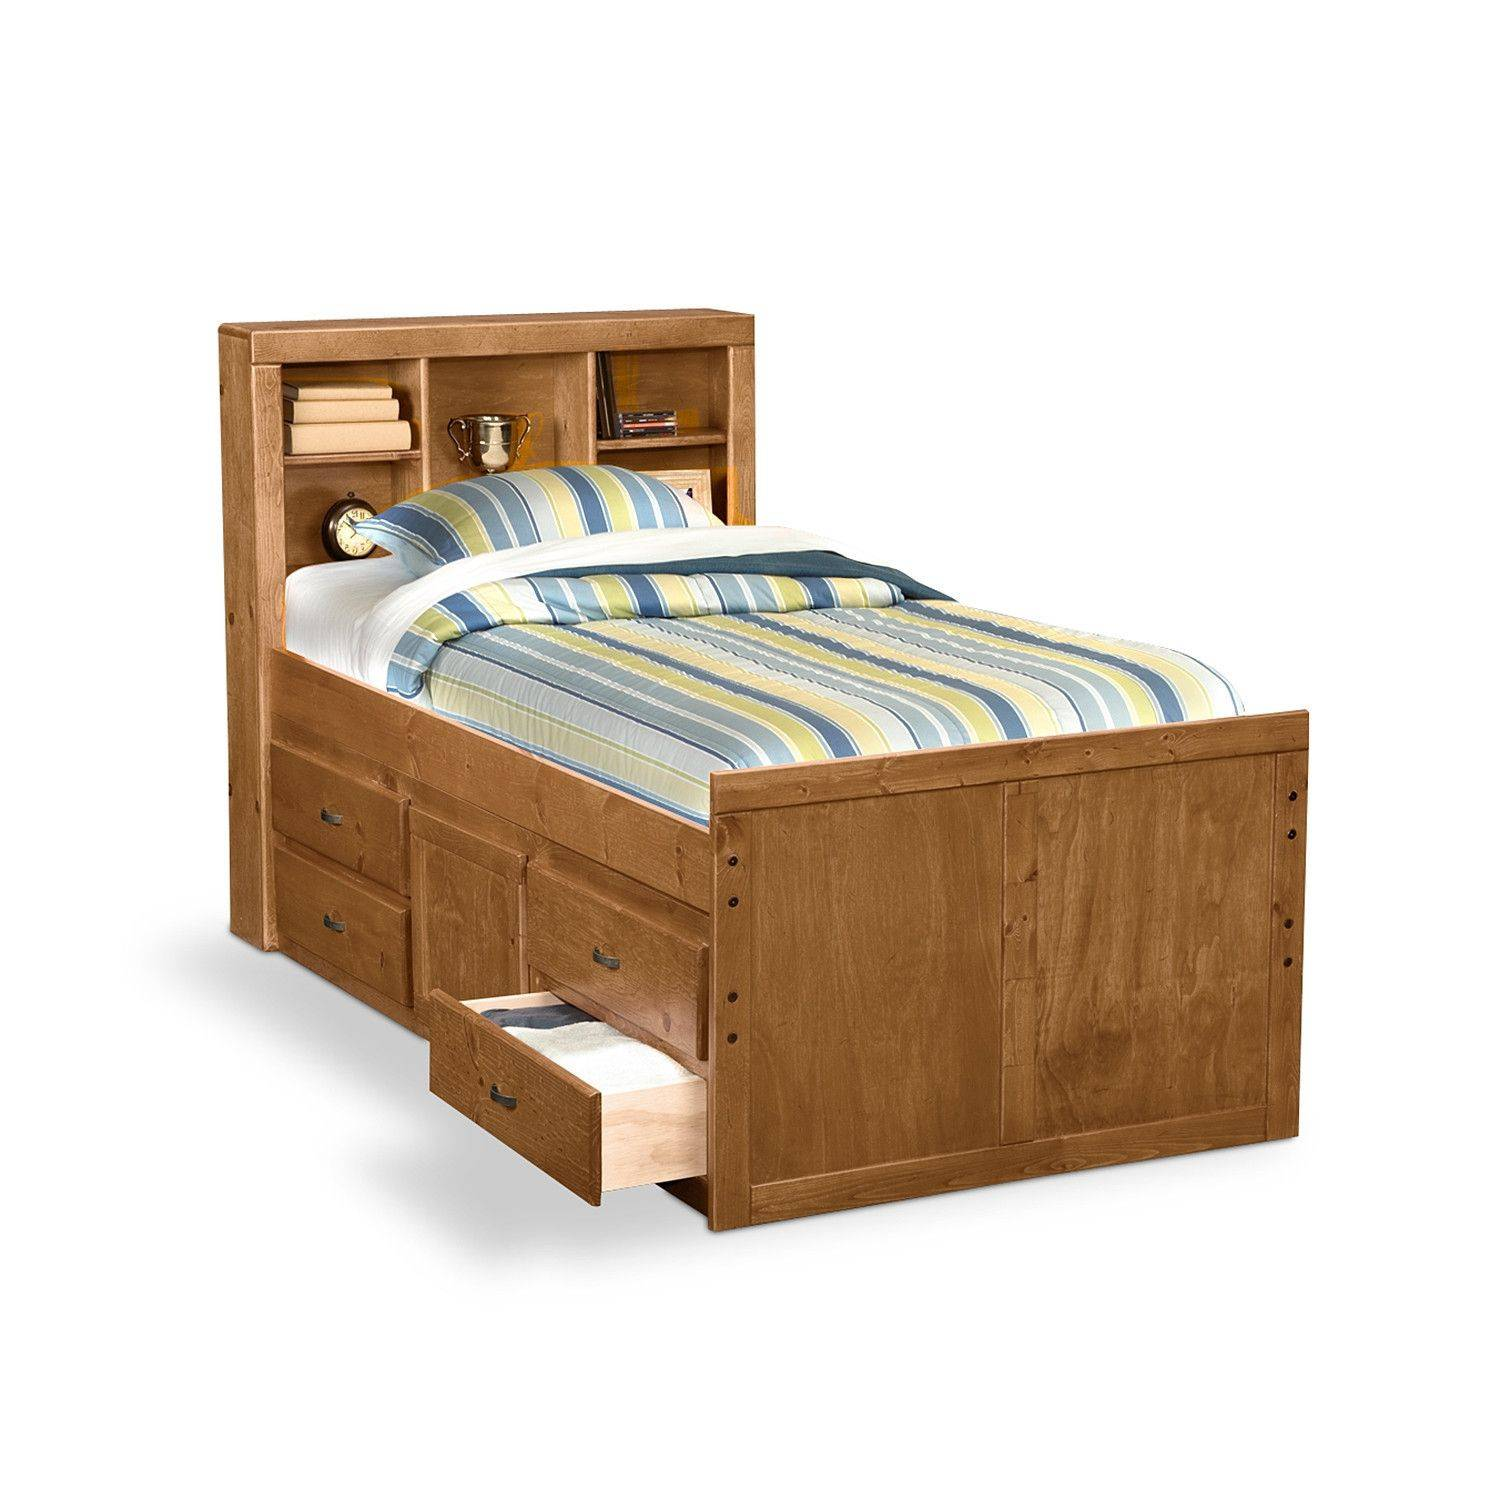 Plete Bed with Drawers Underneath New 30 New Full Size Bed Frame with Storage and Headboard